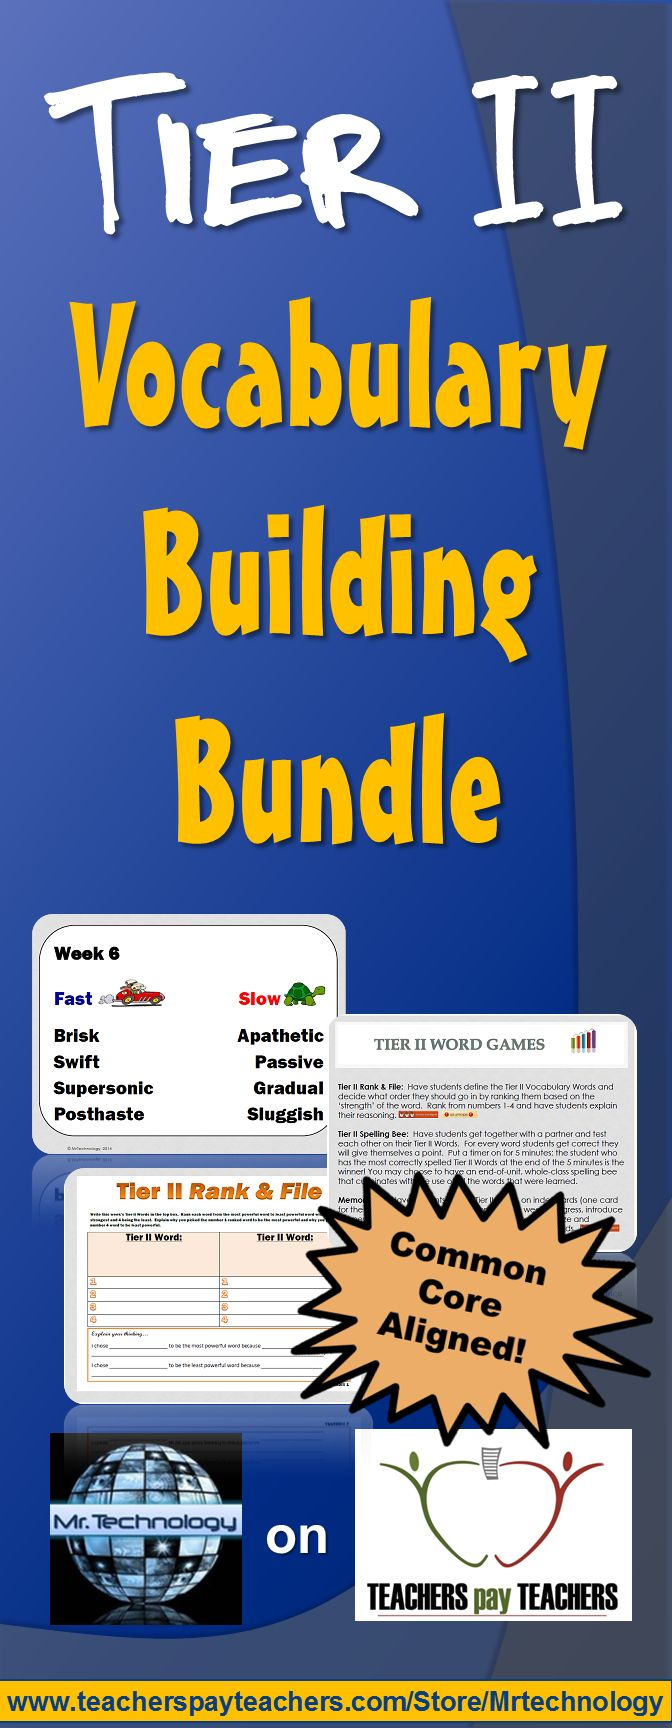 This 20-week Tier II Vocabulary Building Word Pair Bundle for Grades 4 and 5 exposes students to a higher level of vocabulary - one week at a time with opposite word pairs. For example, 'hot / cold', 'new / old' and then pushes student vocabulary by using higher tiered vocabulary for those same words in order to expose students to a deeper meaning for the vocabulary words.